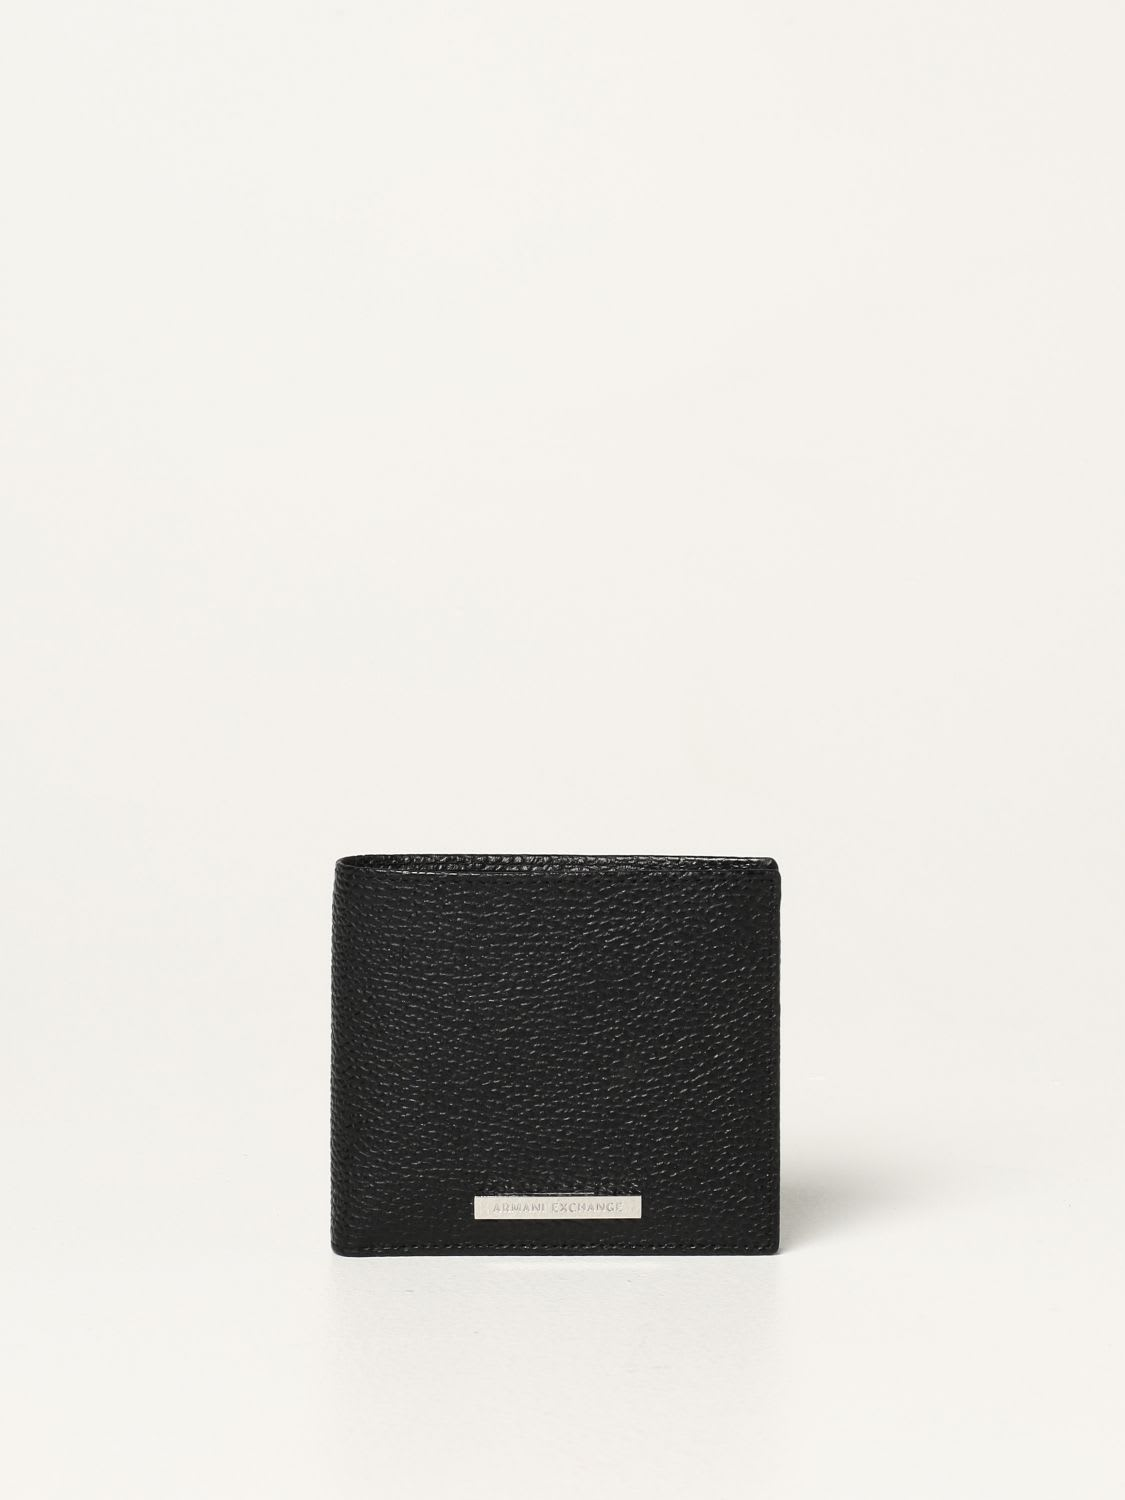 Armani Exchange Wallet Armani Exchange Wallet In Textured Leather